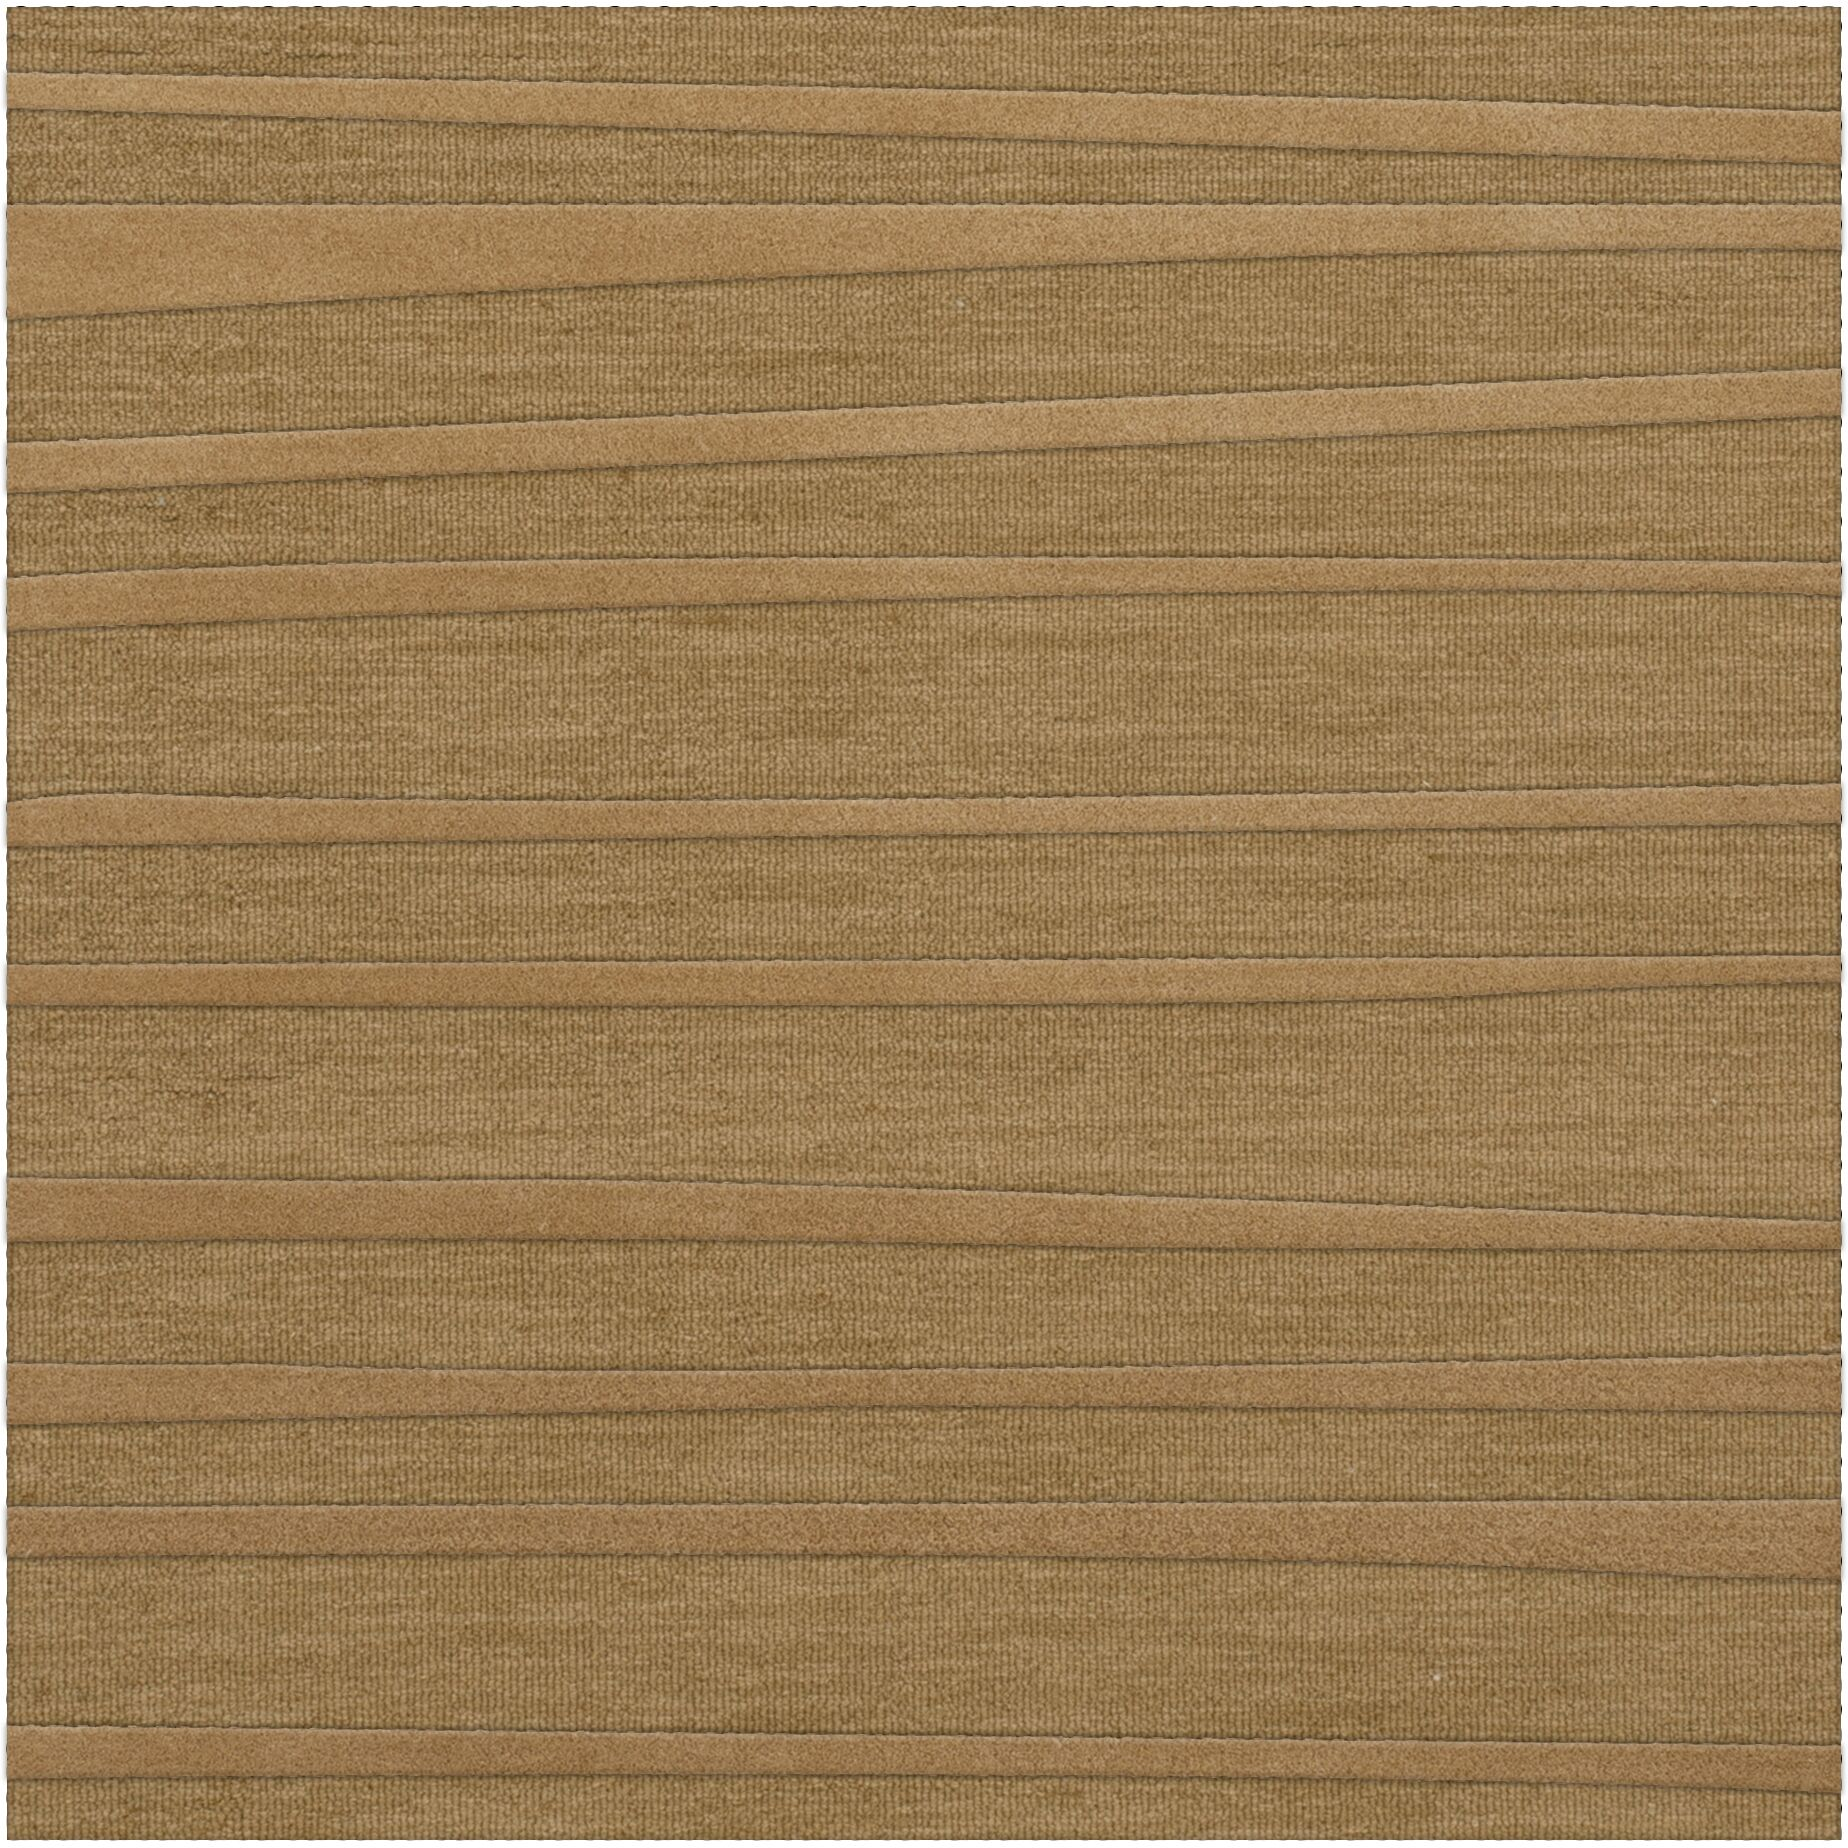 Dover Tufted Wool Wheat Area Rug Rug Size: Square 12'